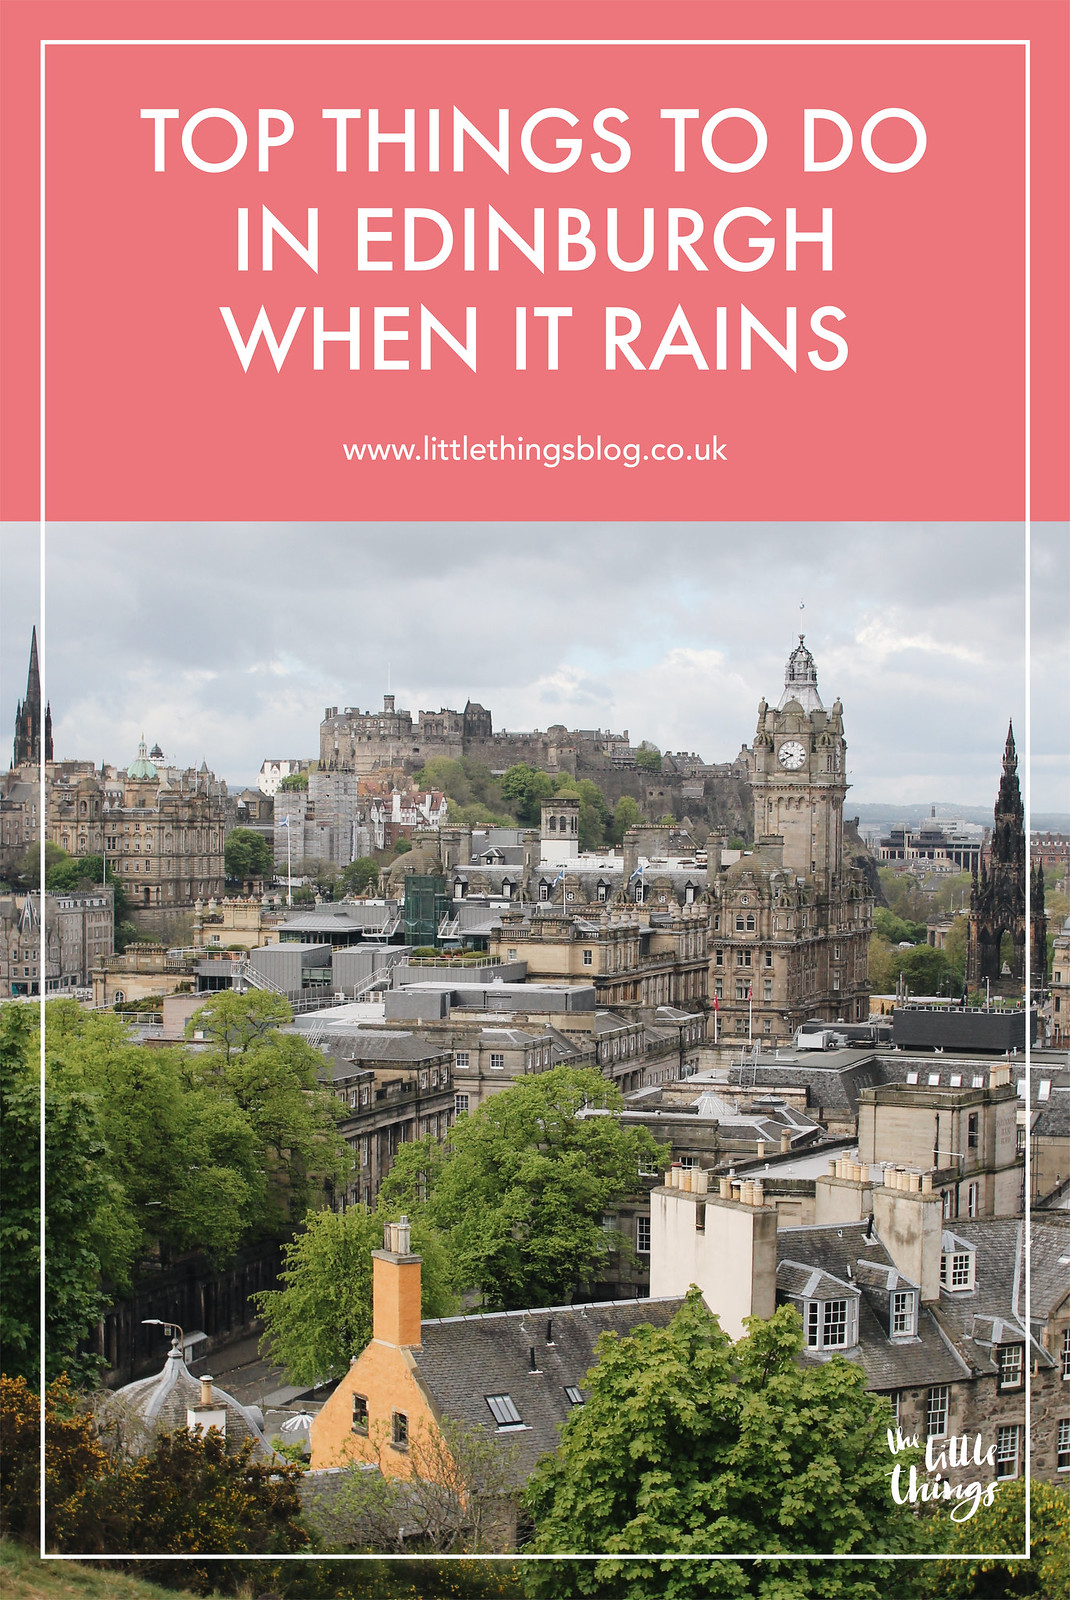 Top things to do in Edinburgh when it rains travel blogger UK